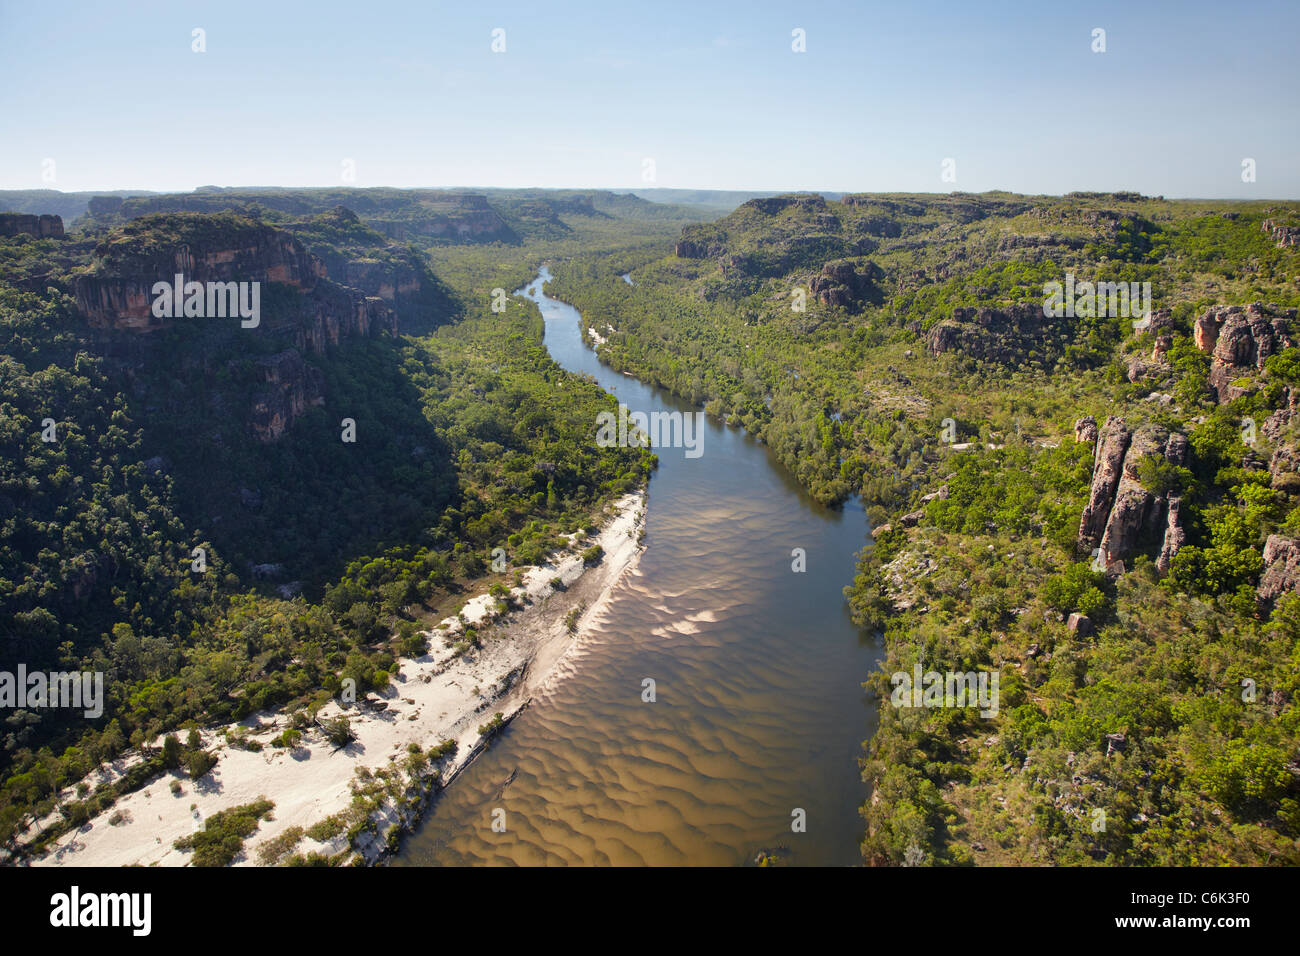 East Alligator River Valley, at the edge of Kakadu National Park, Arnhem Land, Northern Territory, Australia - aerial Stock Photo